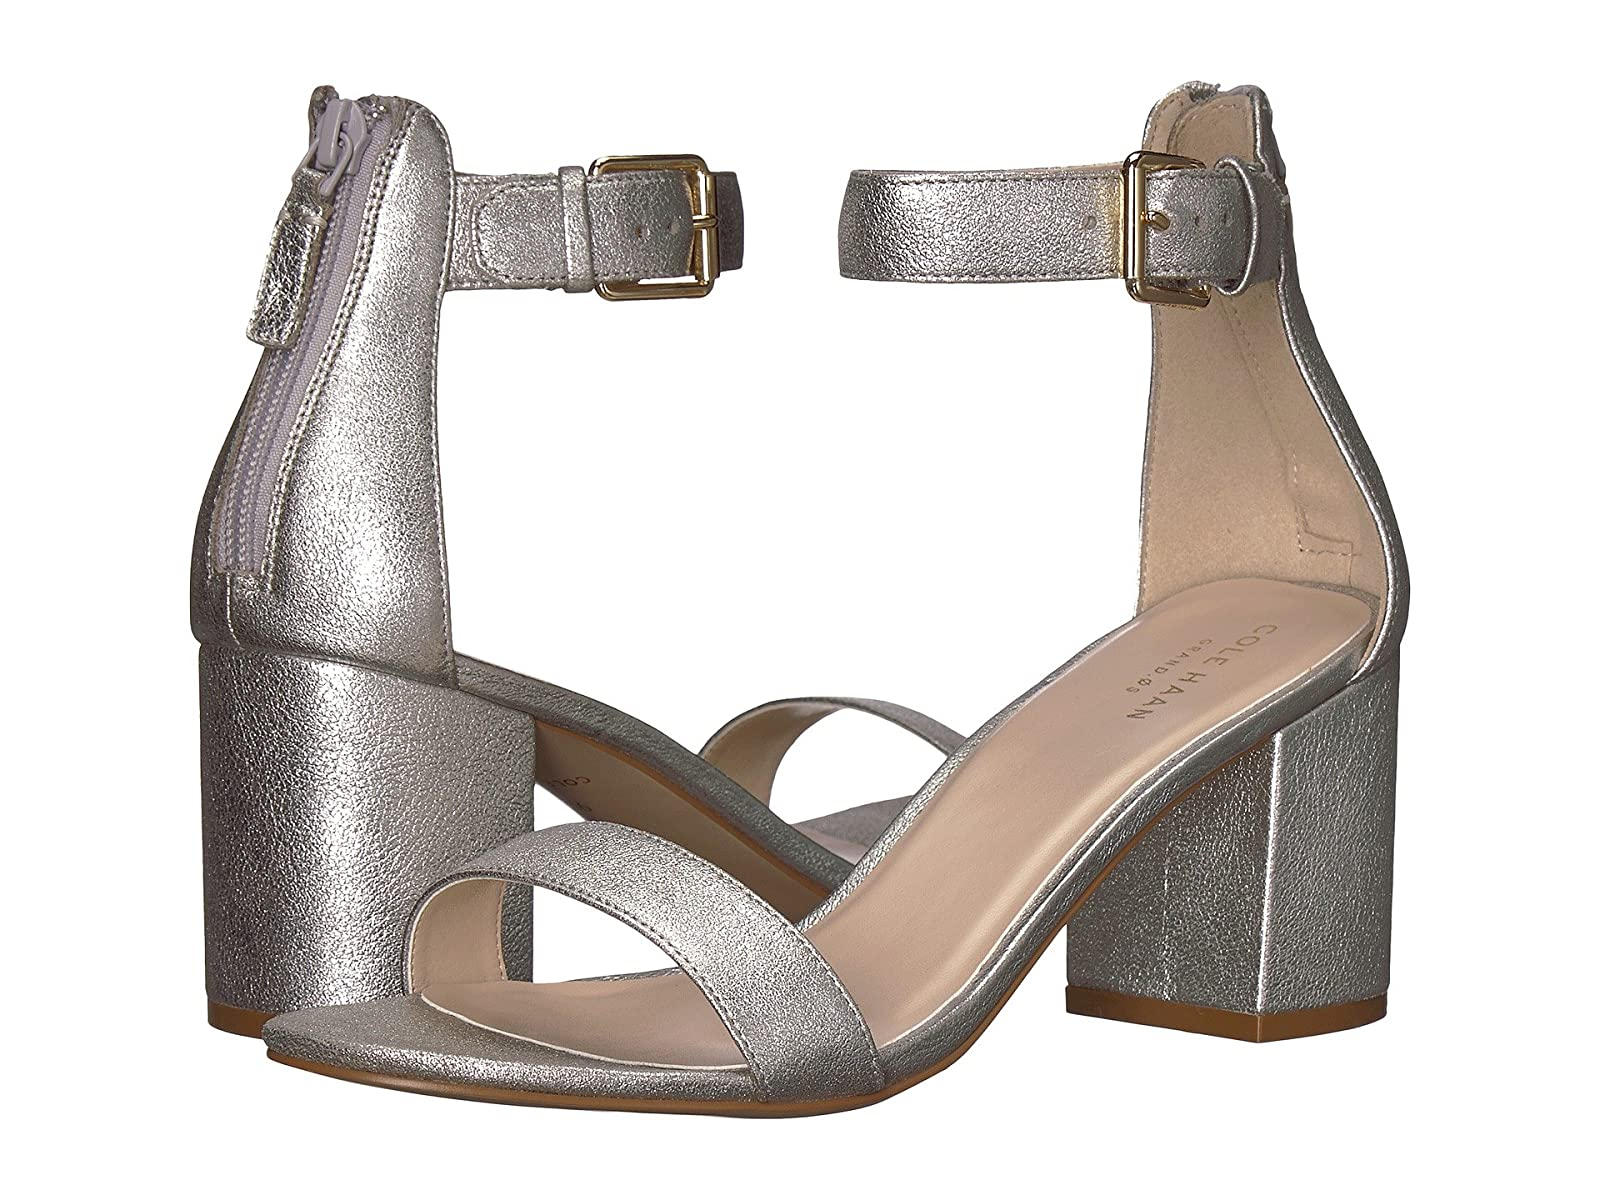 Cole Haan Clarette Sandal IICheap and distinctive eye-catching shoes